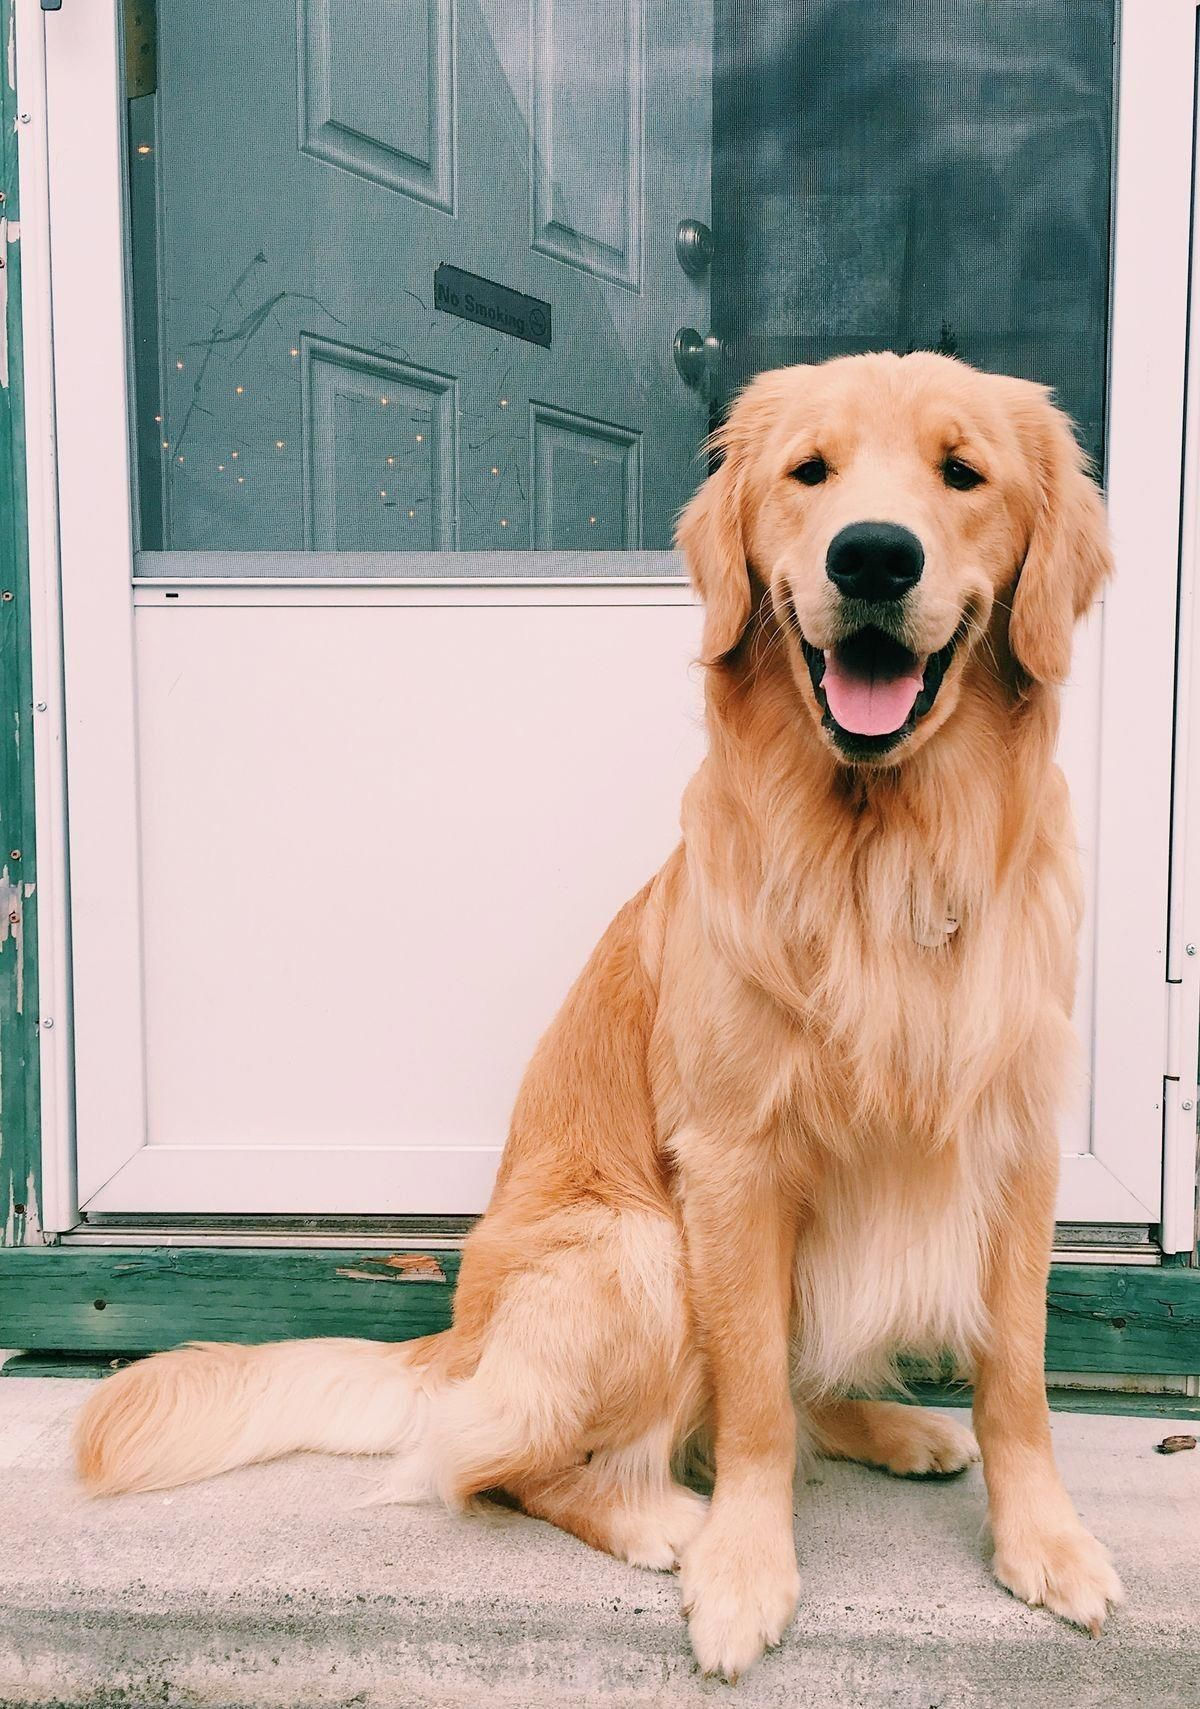 Discover The Friendly Golden Retriever Dog And Kids Goldenretrievertoday Goldenretriever Golde Dogs Golden Retriever Golden Retriever Cute Dogs And Puppies